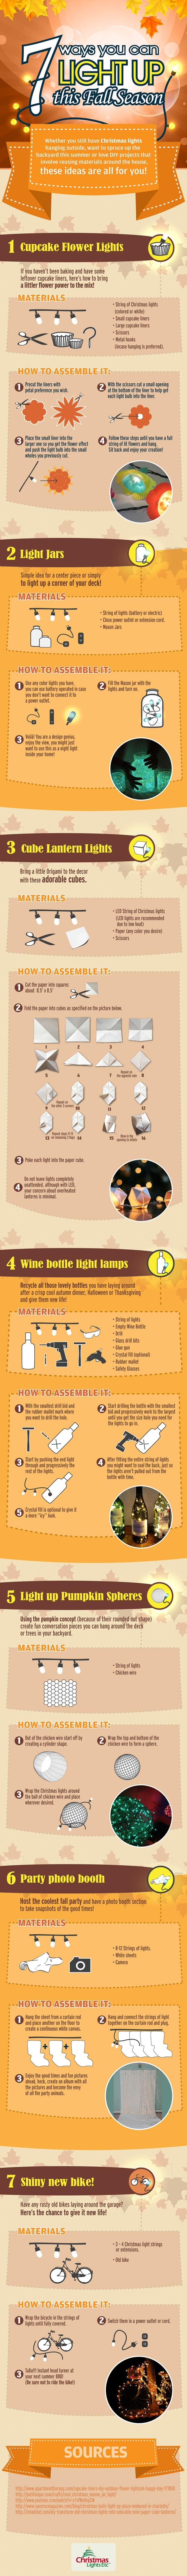 7 Ways You Can Light Up This Fall Season